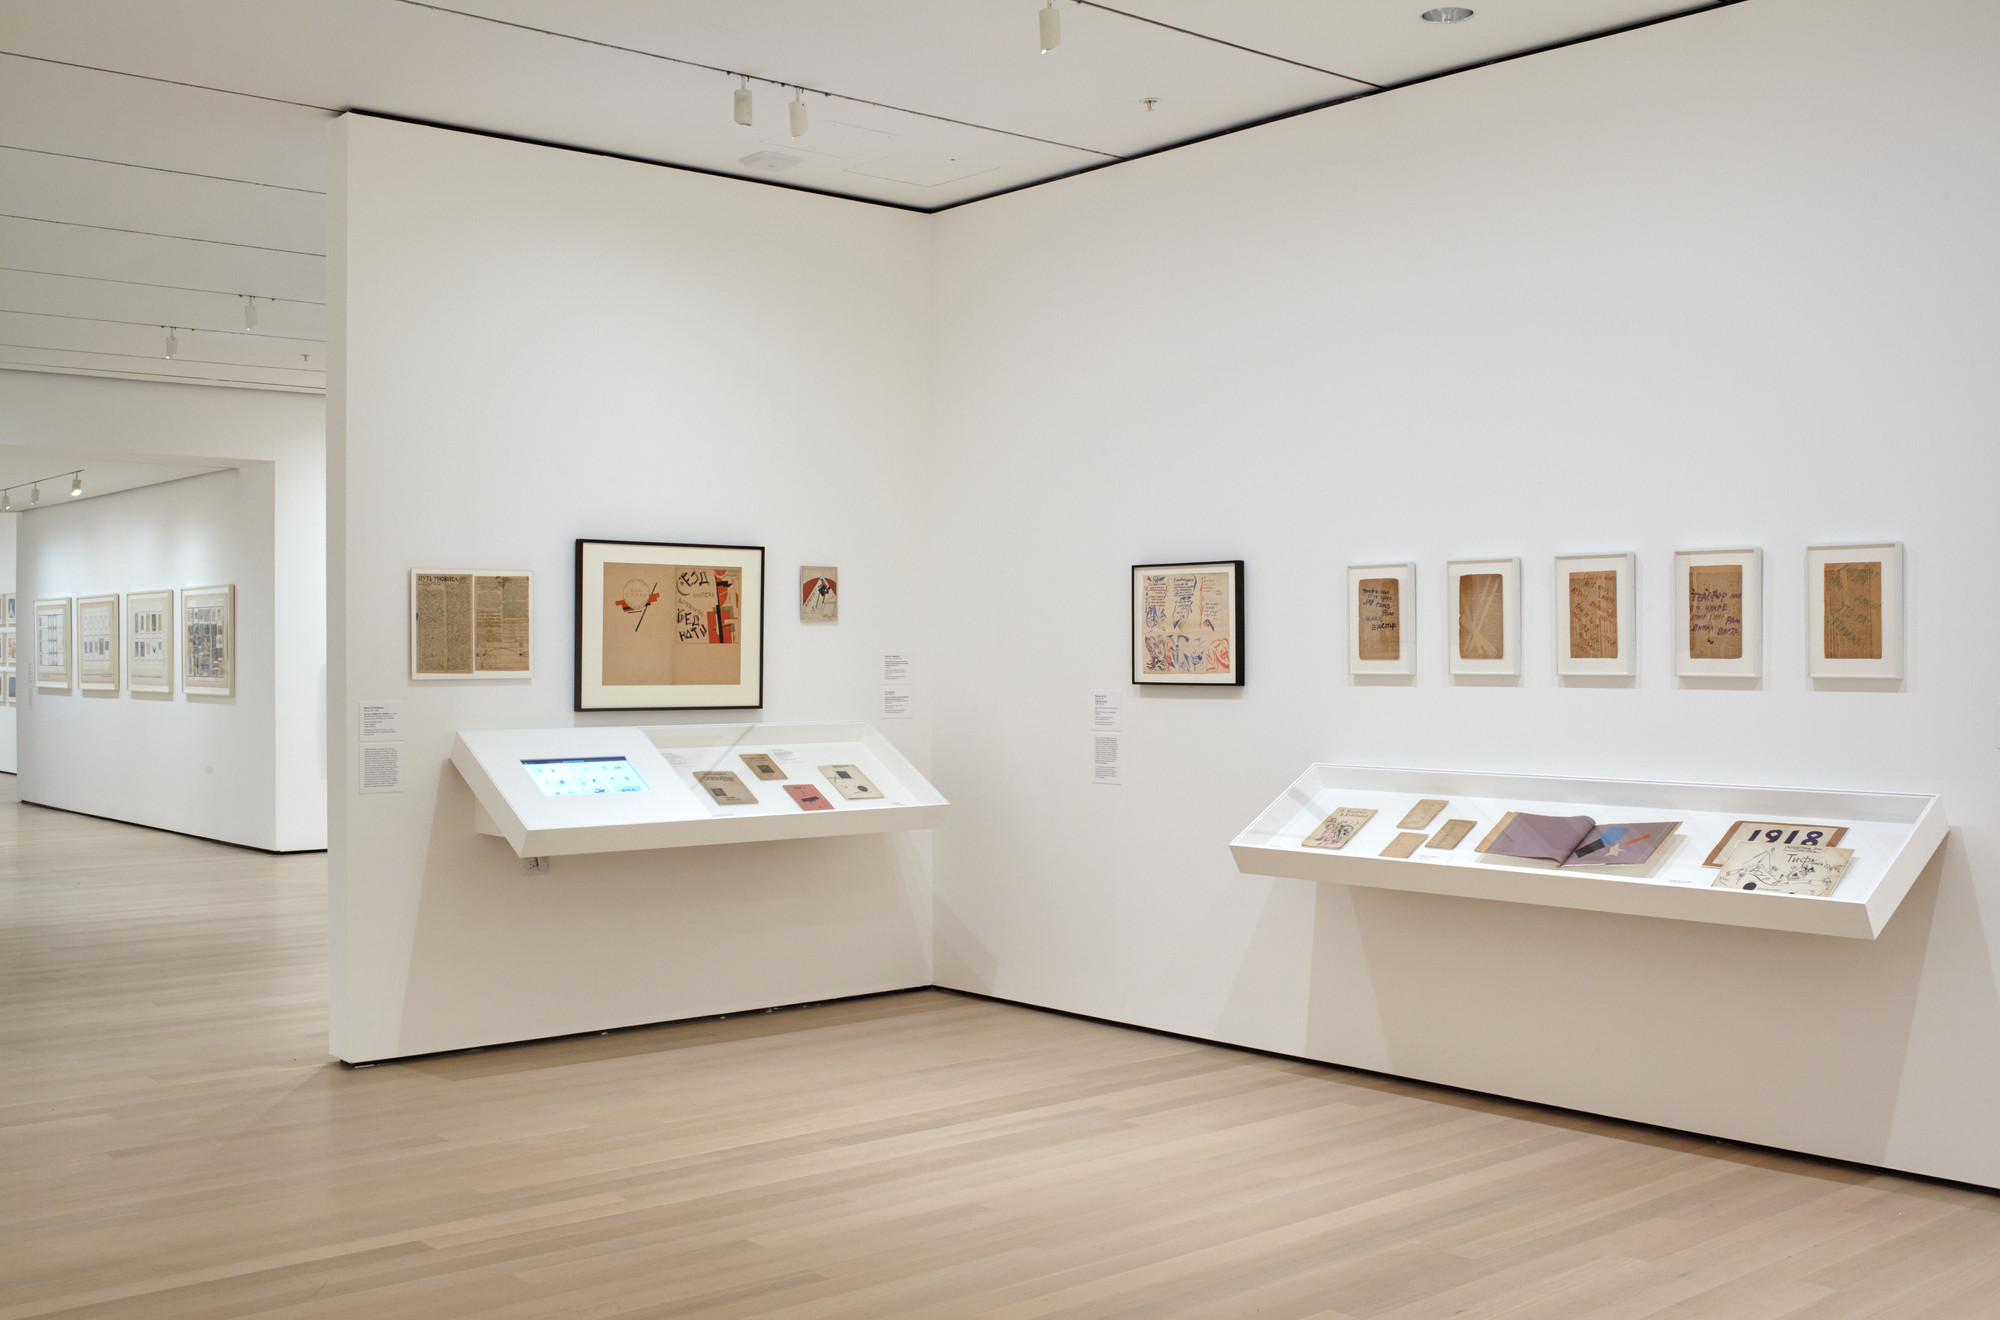 Installation view, A Revolutionary Impulse: The Rise of the Russian Avant-Garde, The Museum of Modern Art, December 3, 2016–March 12, 2017